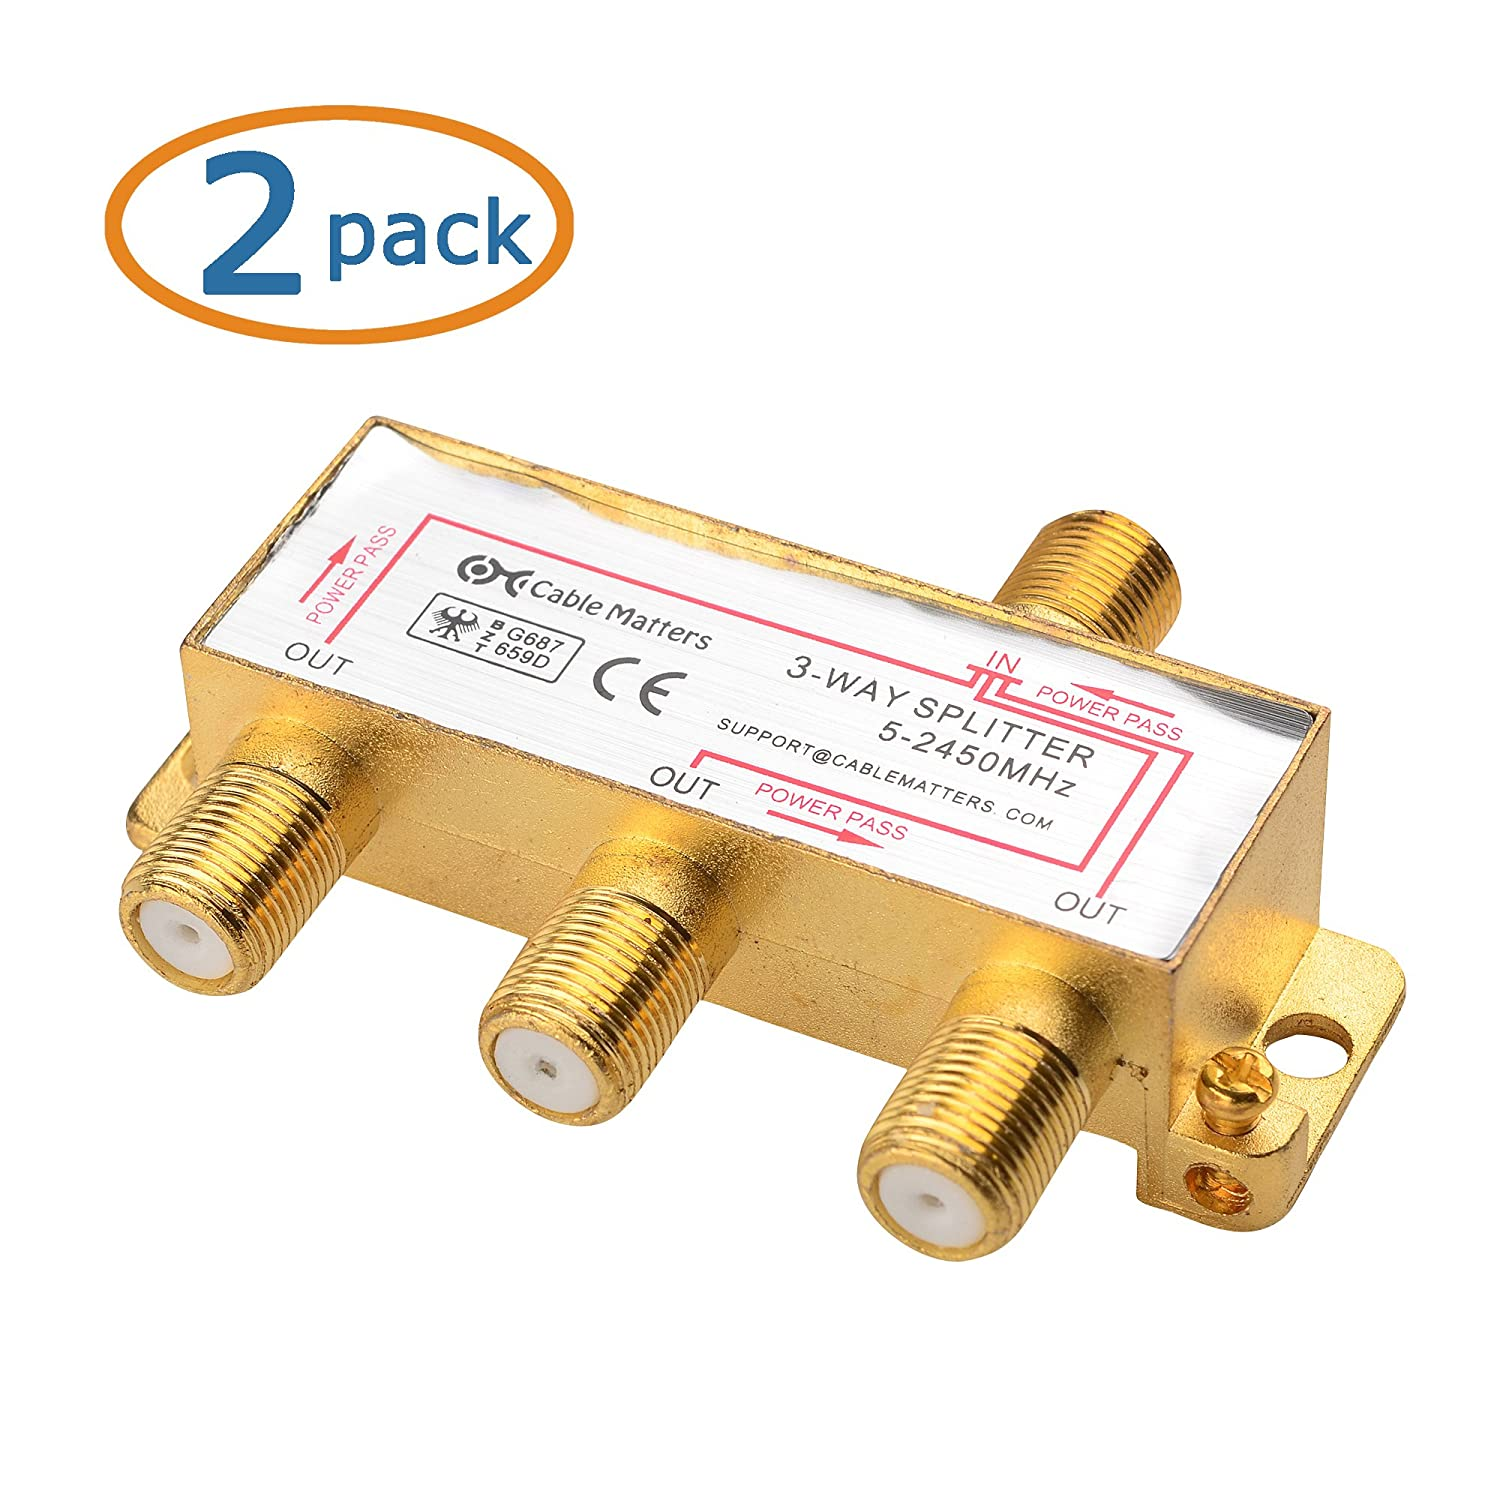 3 Way Cable Splitter : Cable matters pack gold plated way ghz coaxial